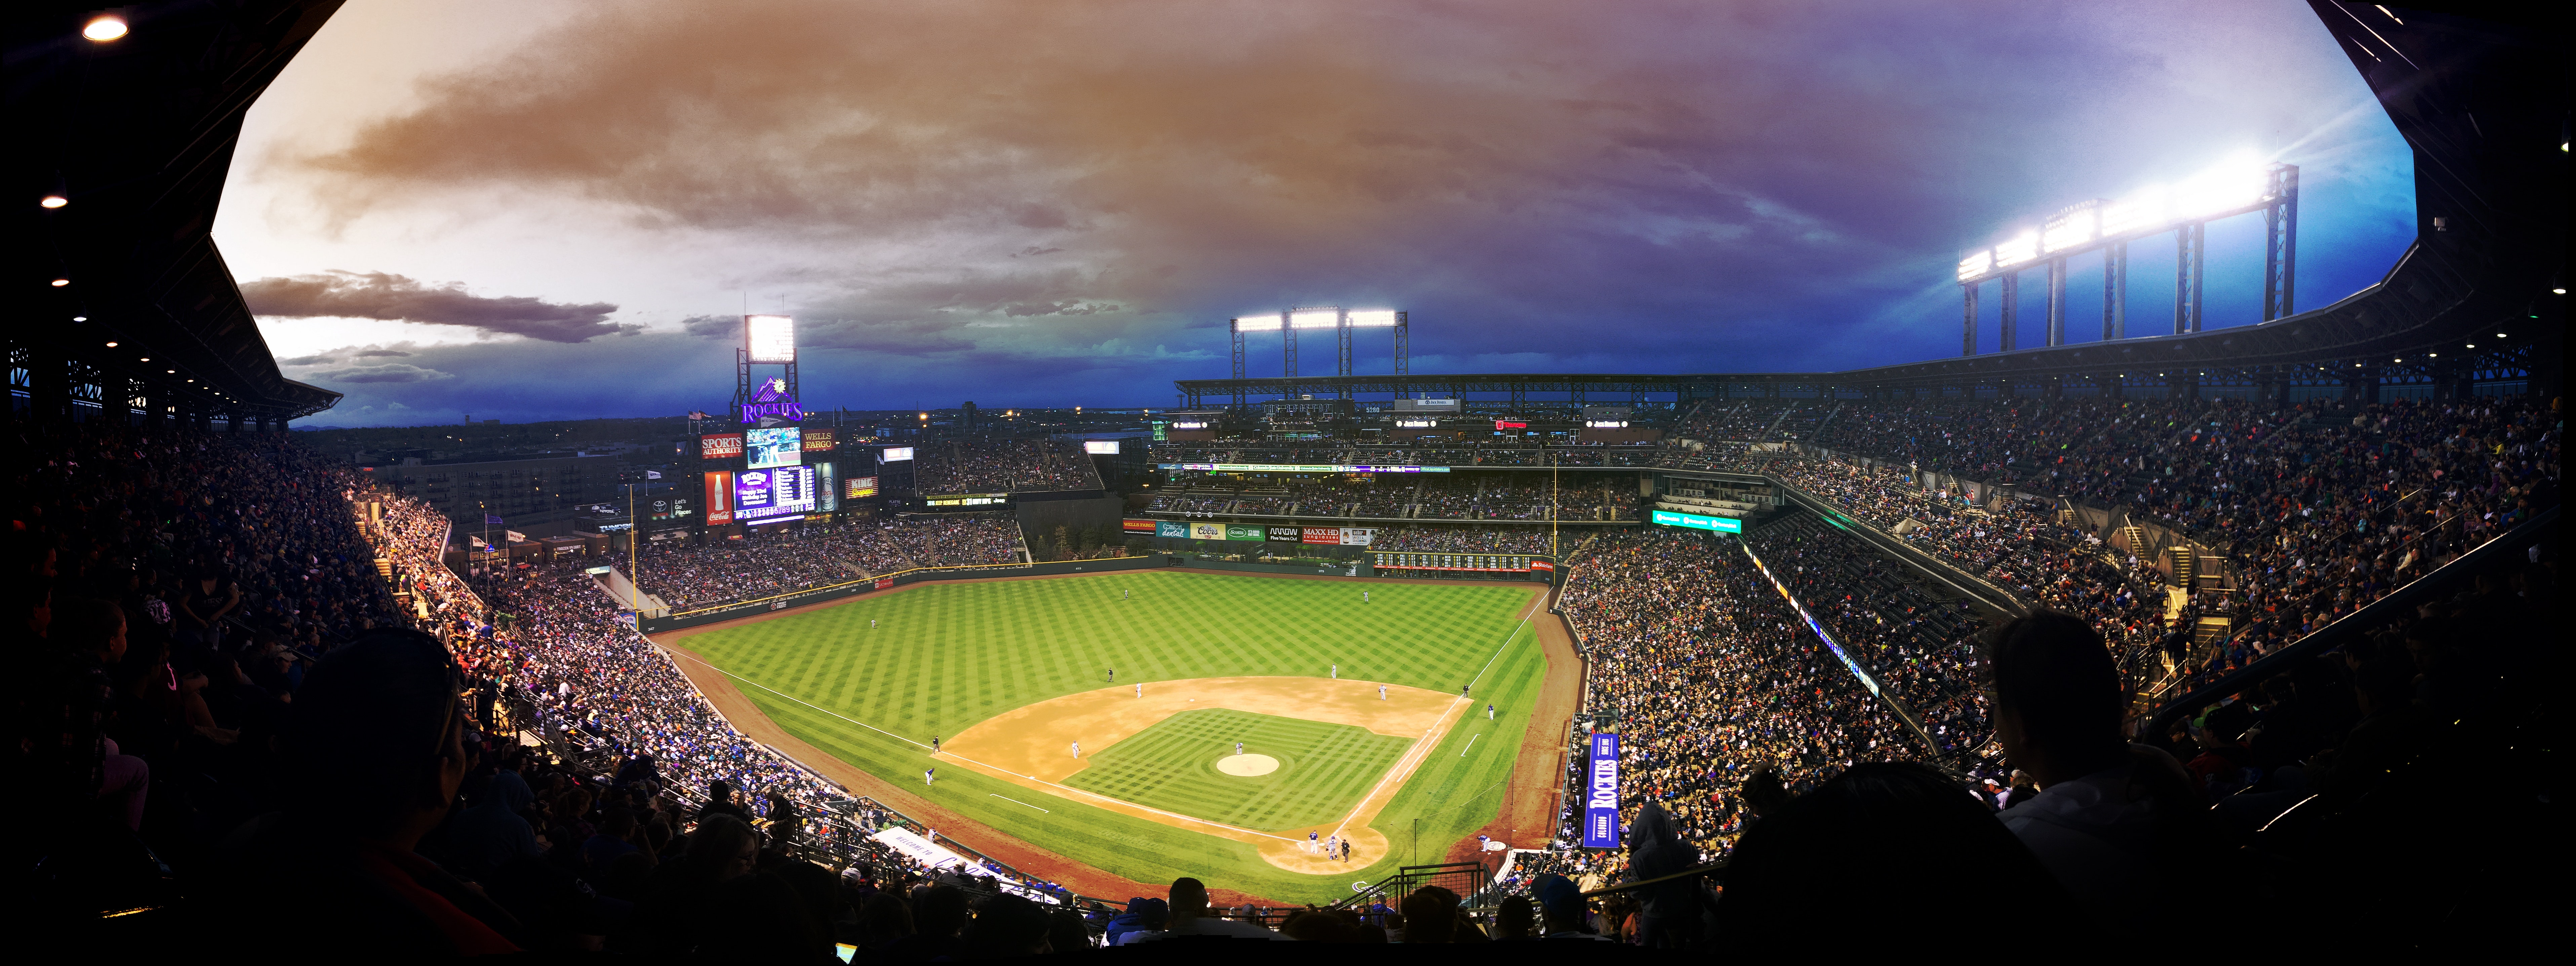 baseball-crowd-field-89699